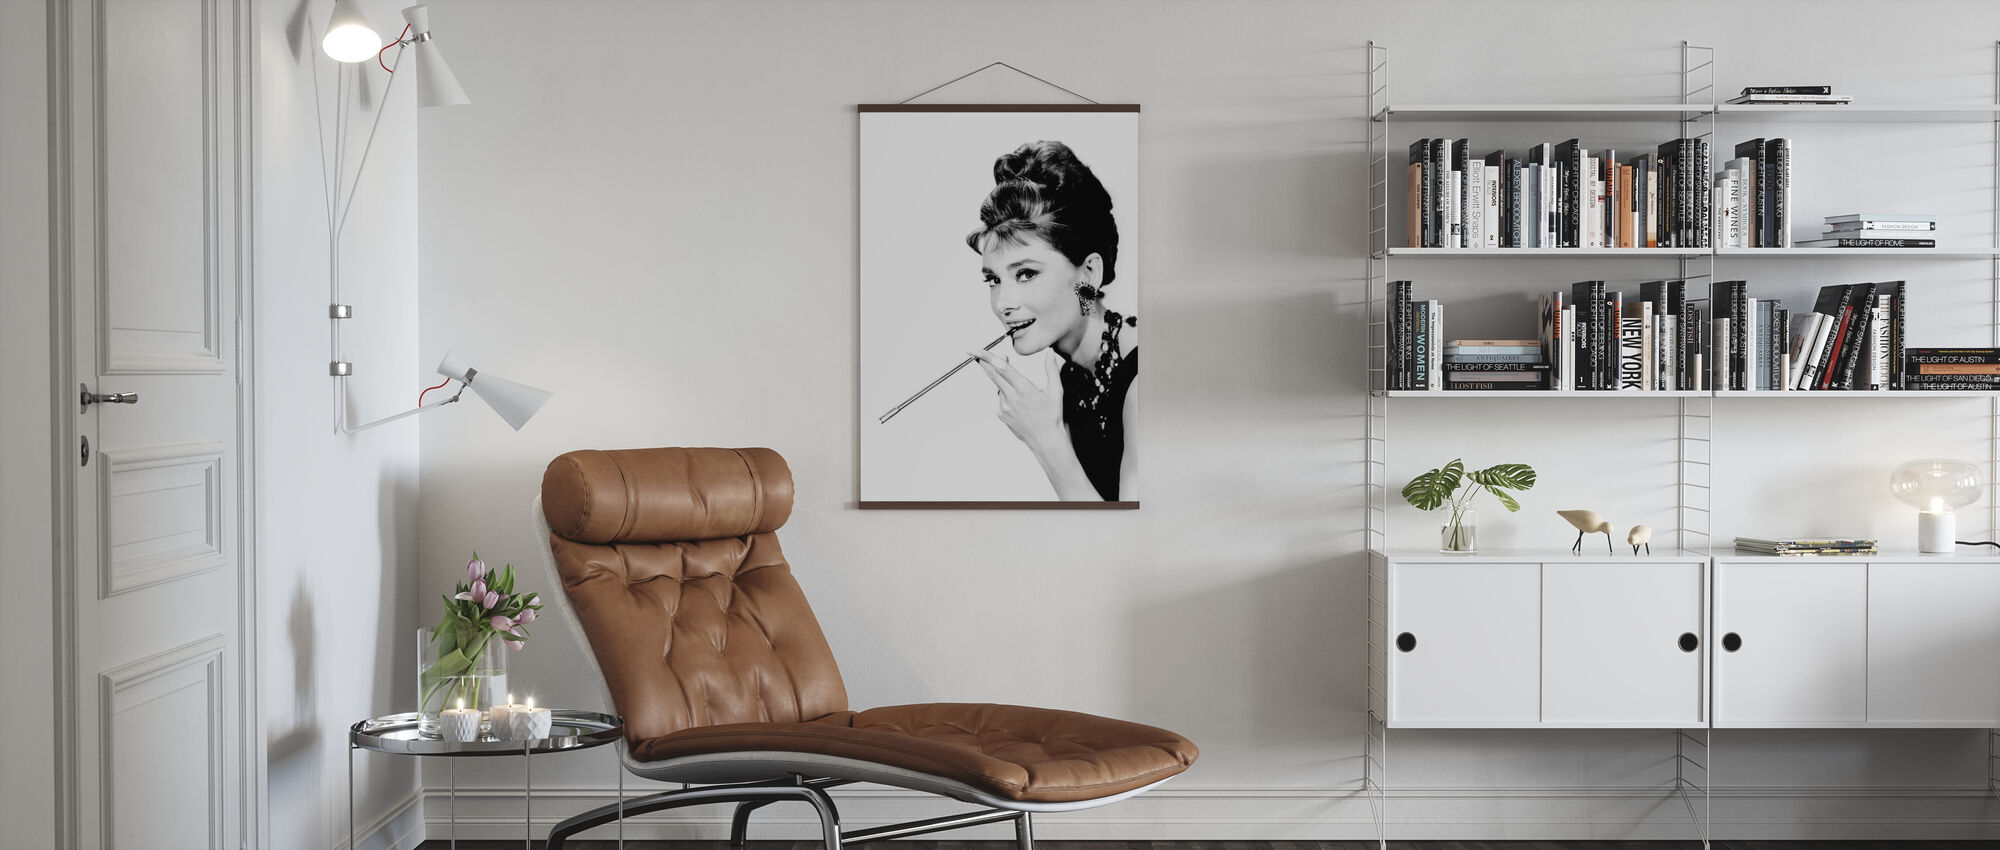 Breakfast at Tiffany's - Poster - Living Room